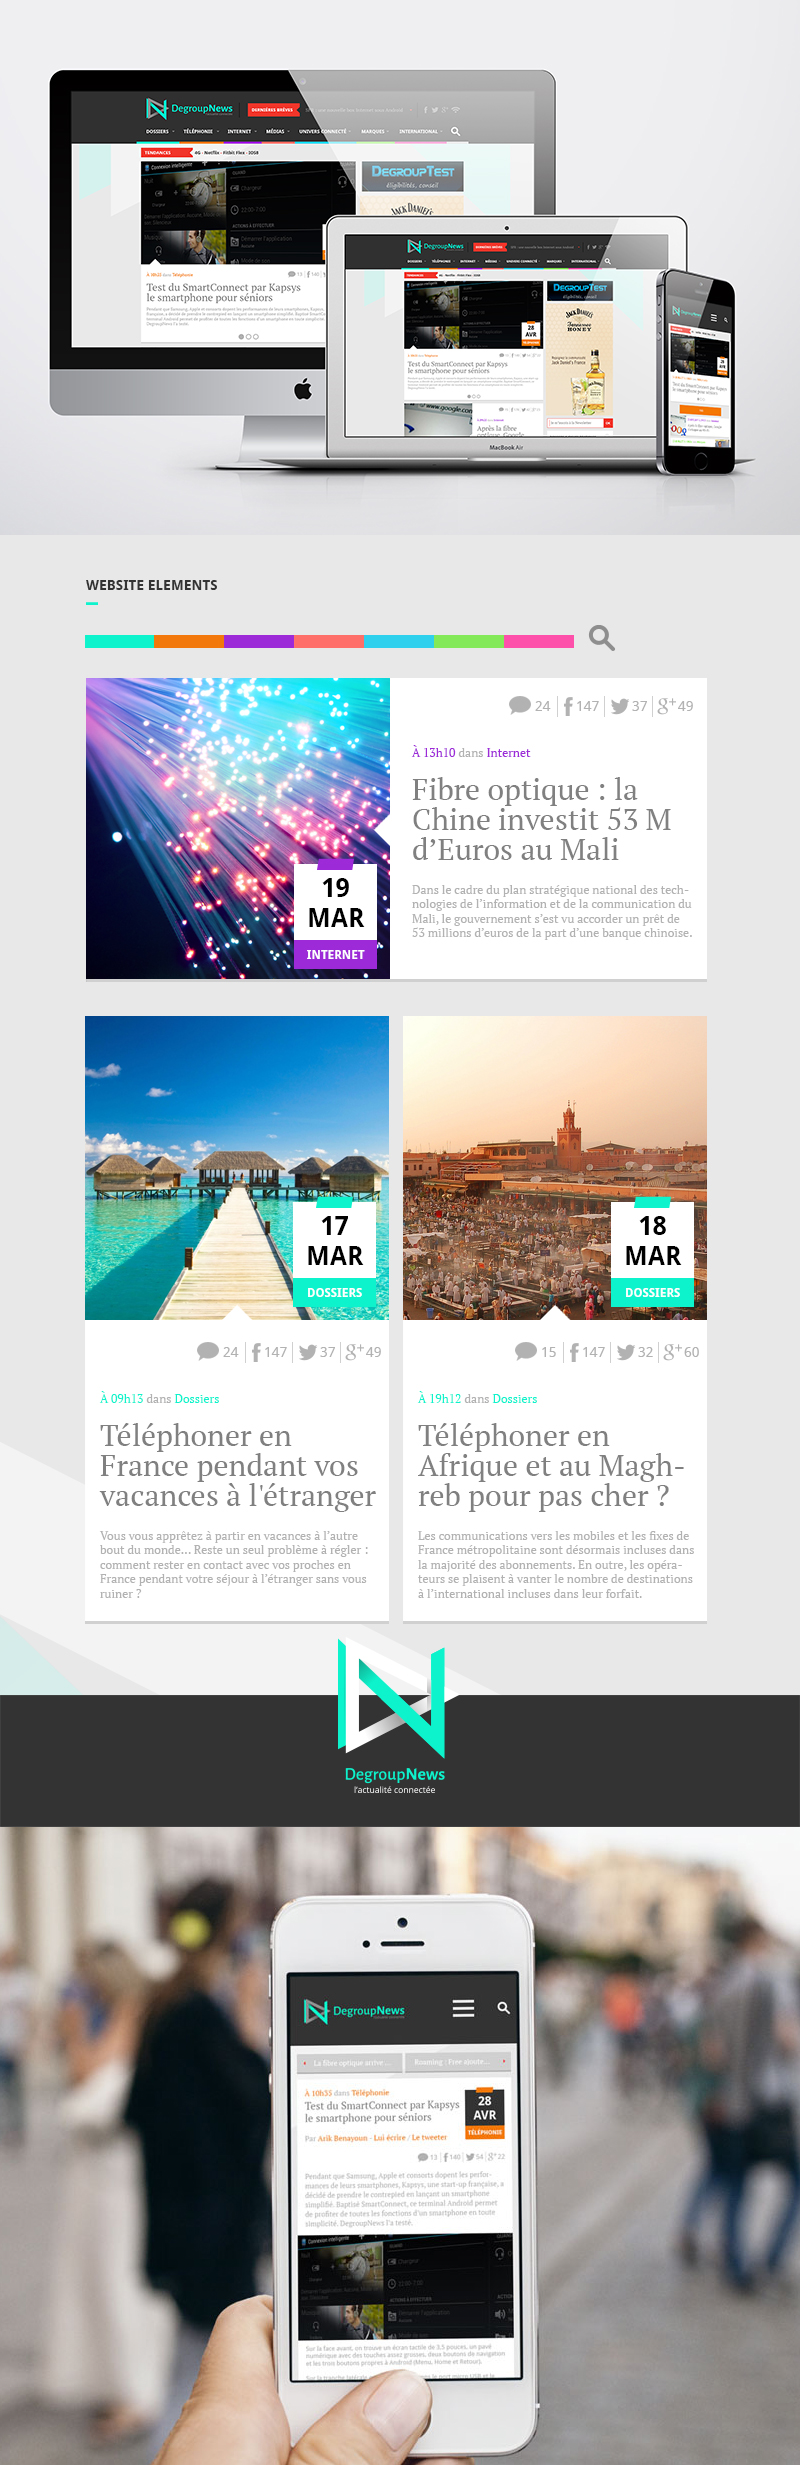 marie-brun-the-seventeenth-visual-identity-webdesign-responsive-mobile-degroupnews.jpg